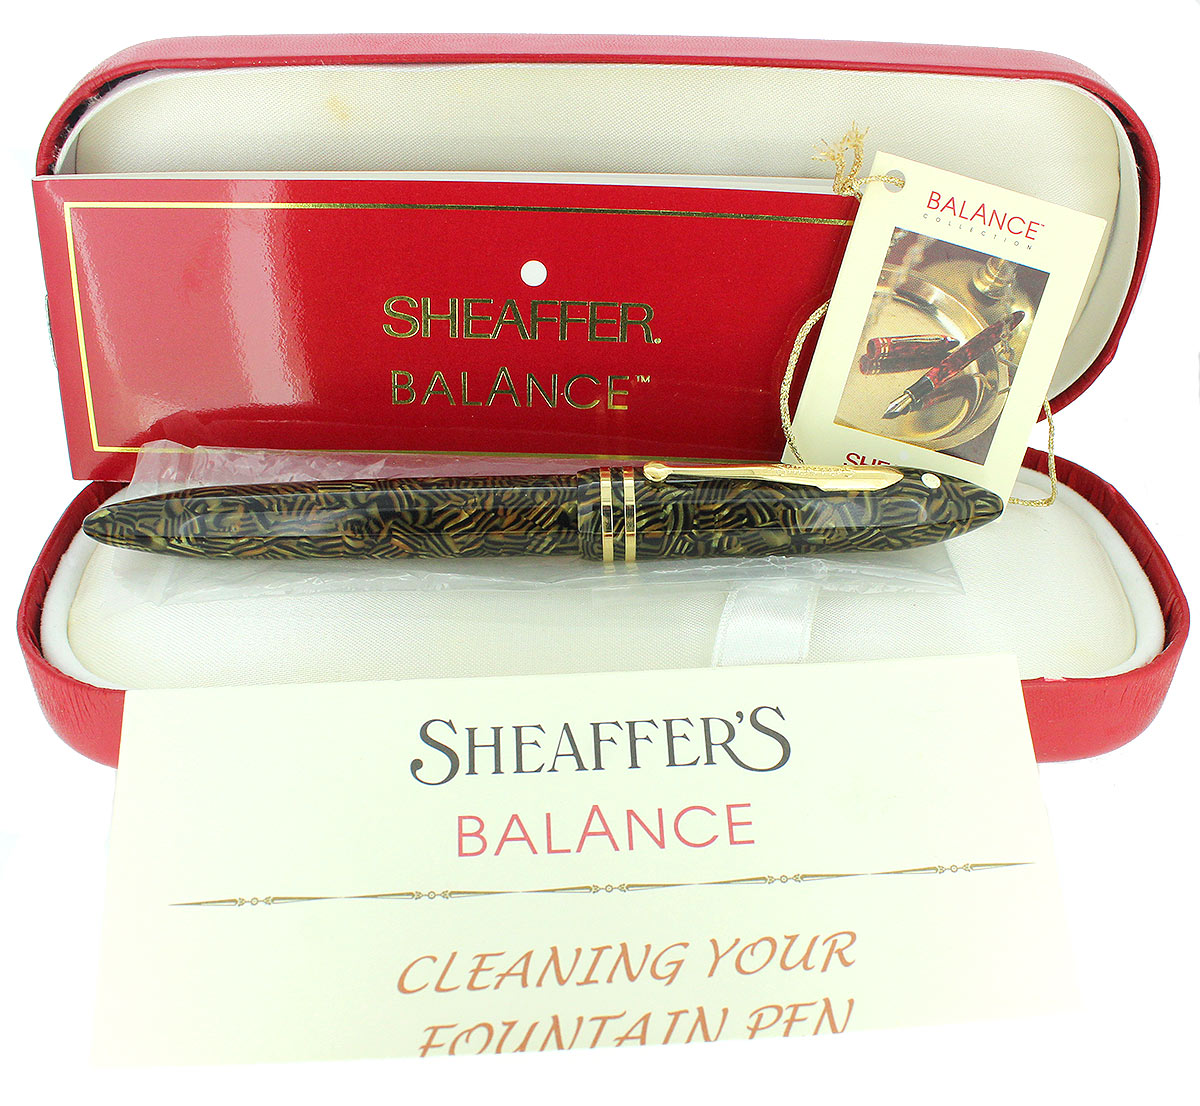 SHEAFFER BALANCE II TIGER EYE FOUNTAIN PEN 18K MED NIB NEVER INKED MINT IN BOX OFFERED BY ANTIQUE DIGGER